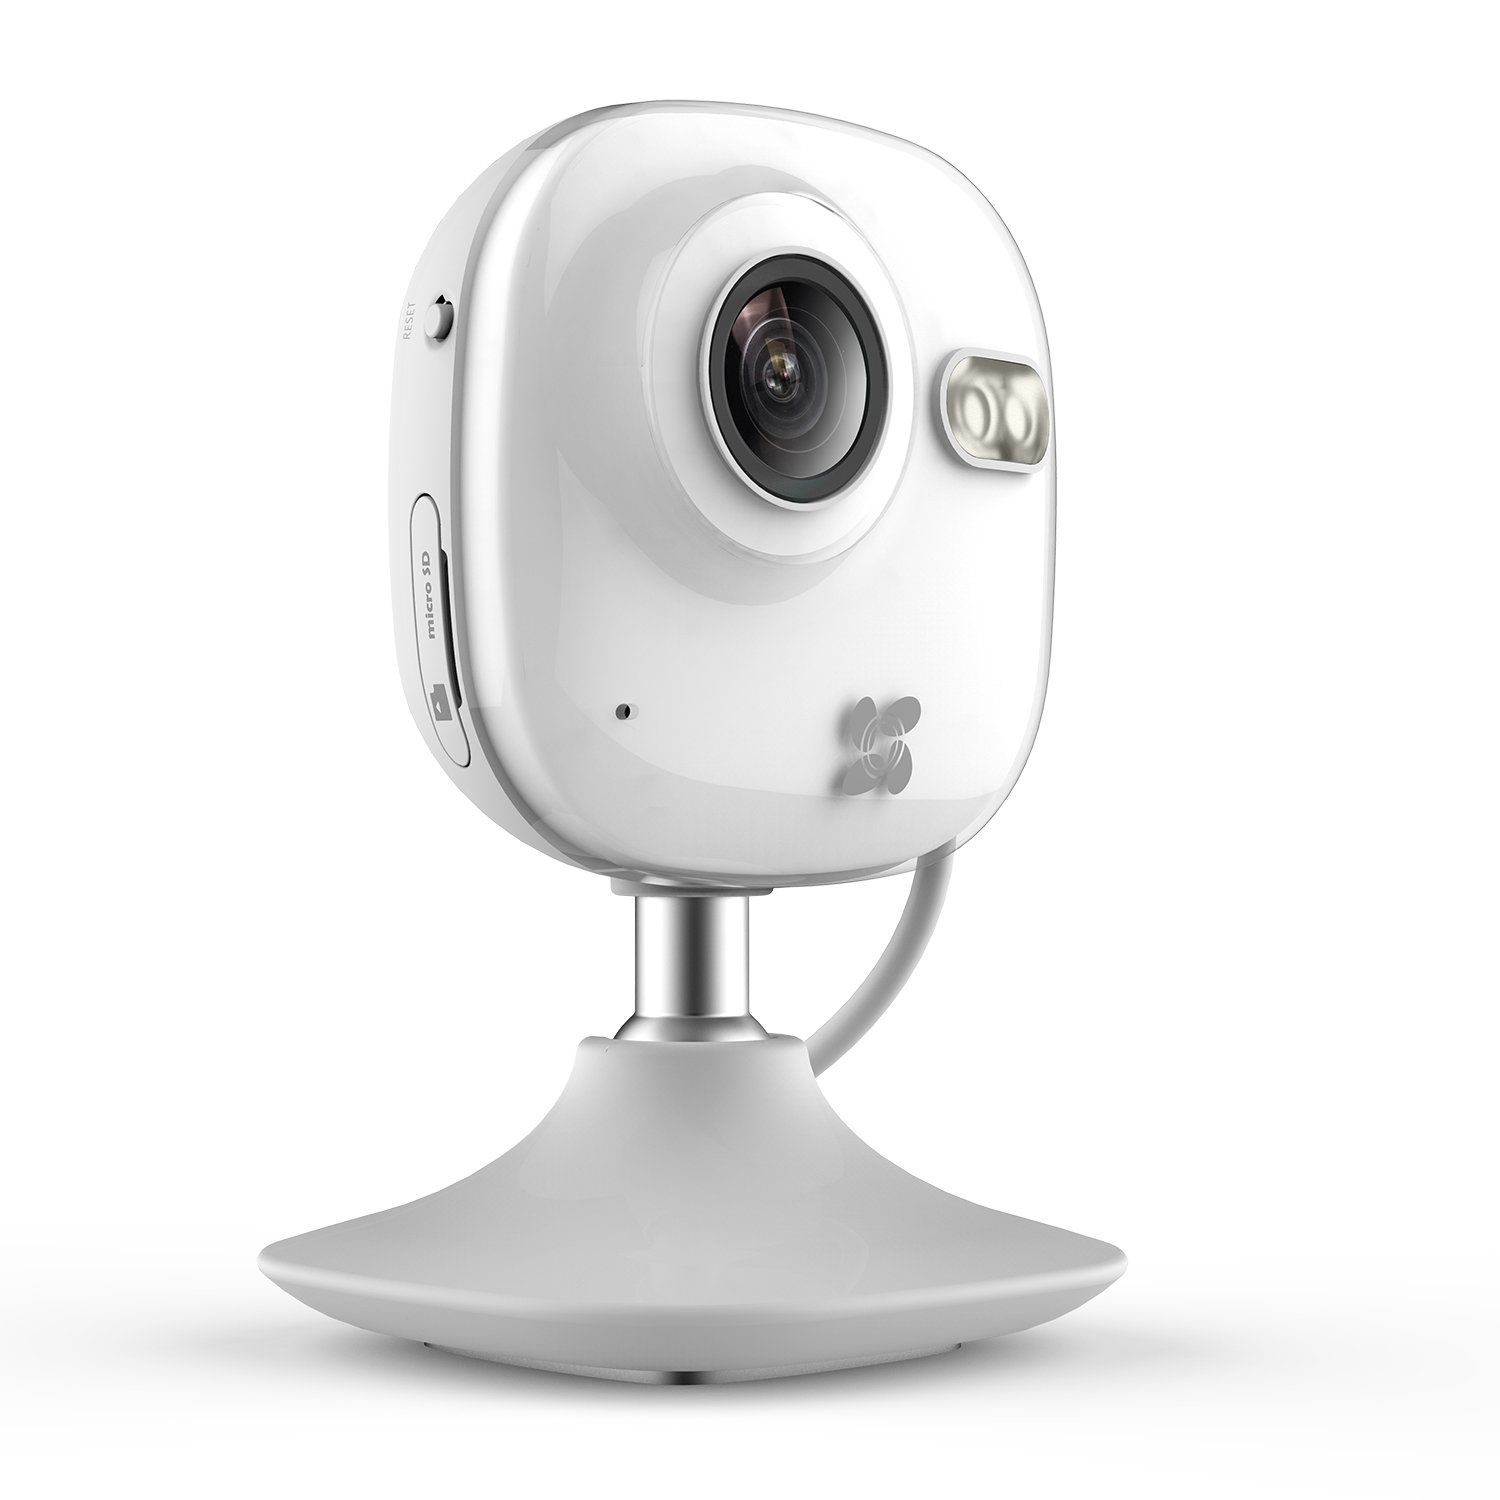 EZVIZ Mini HD 720p WiFi Home Security Camera with Motion Detection, 130° View, Night Vision, Works with Alexa using IFTTT, WiFi Band 2.4Ghz